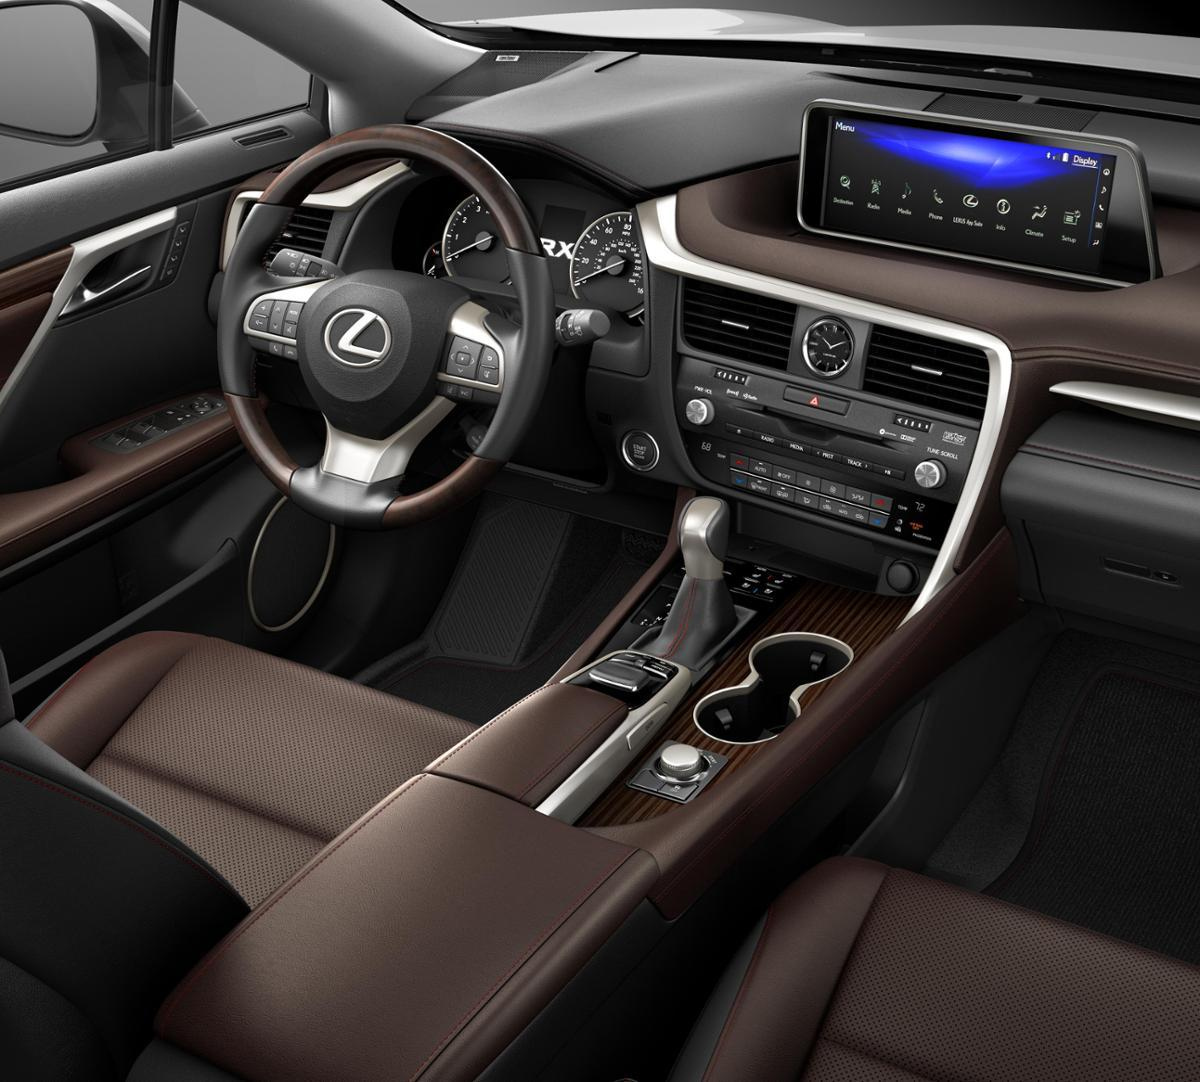 New 2019 Lexus RX 350 (Eminent White Pearl) For Sale In